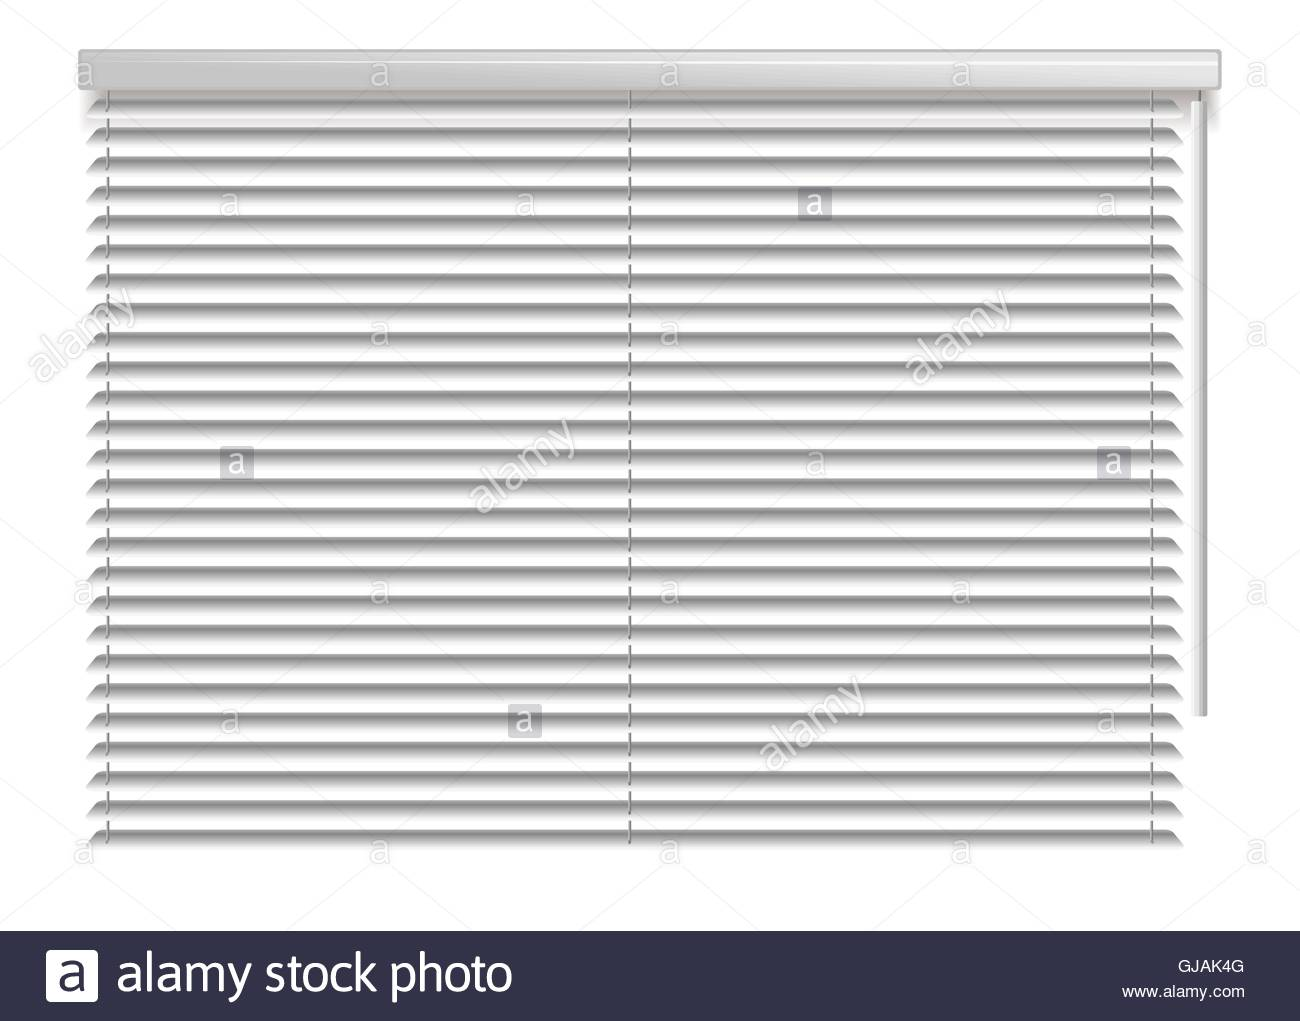 office window blinds. Office Interior Blinds. Window Decor. Horizontal Blind. Vector Illustration. Grey Blinds T